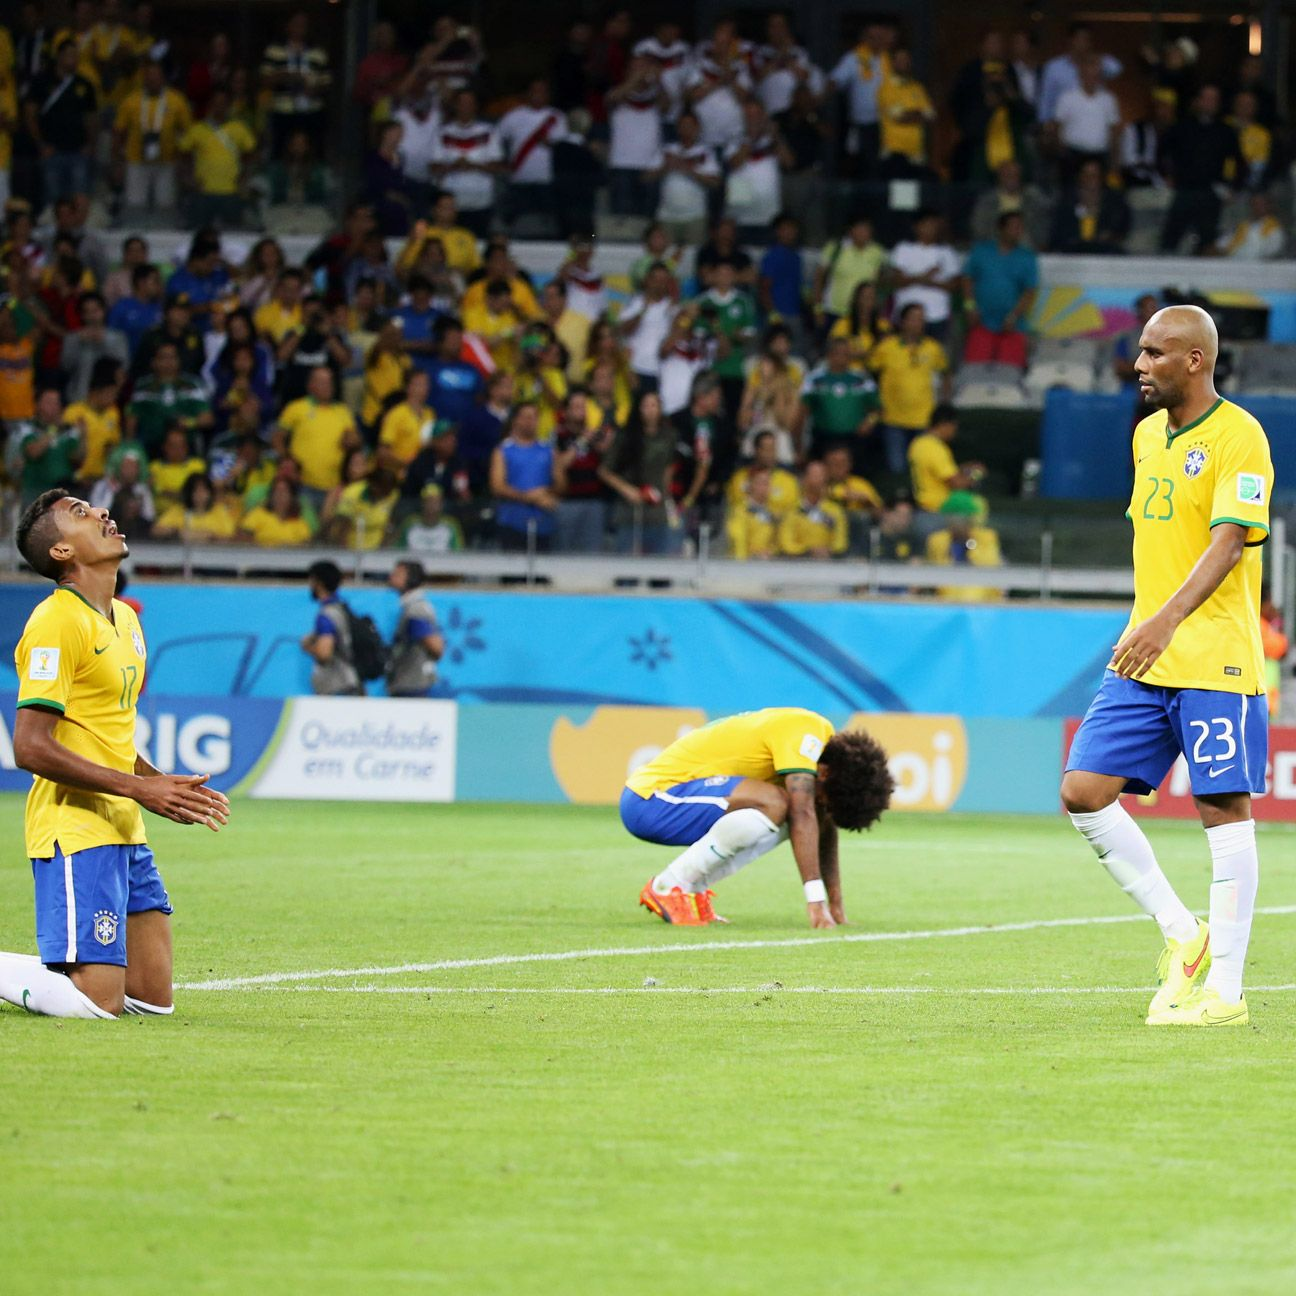 Brazil's epic failure versus Germany makes Saturday's third-place game even more important for morale.